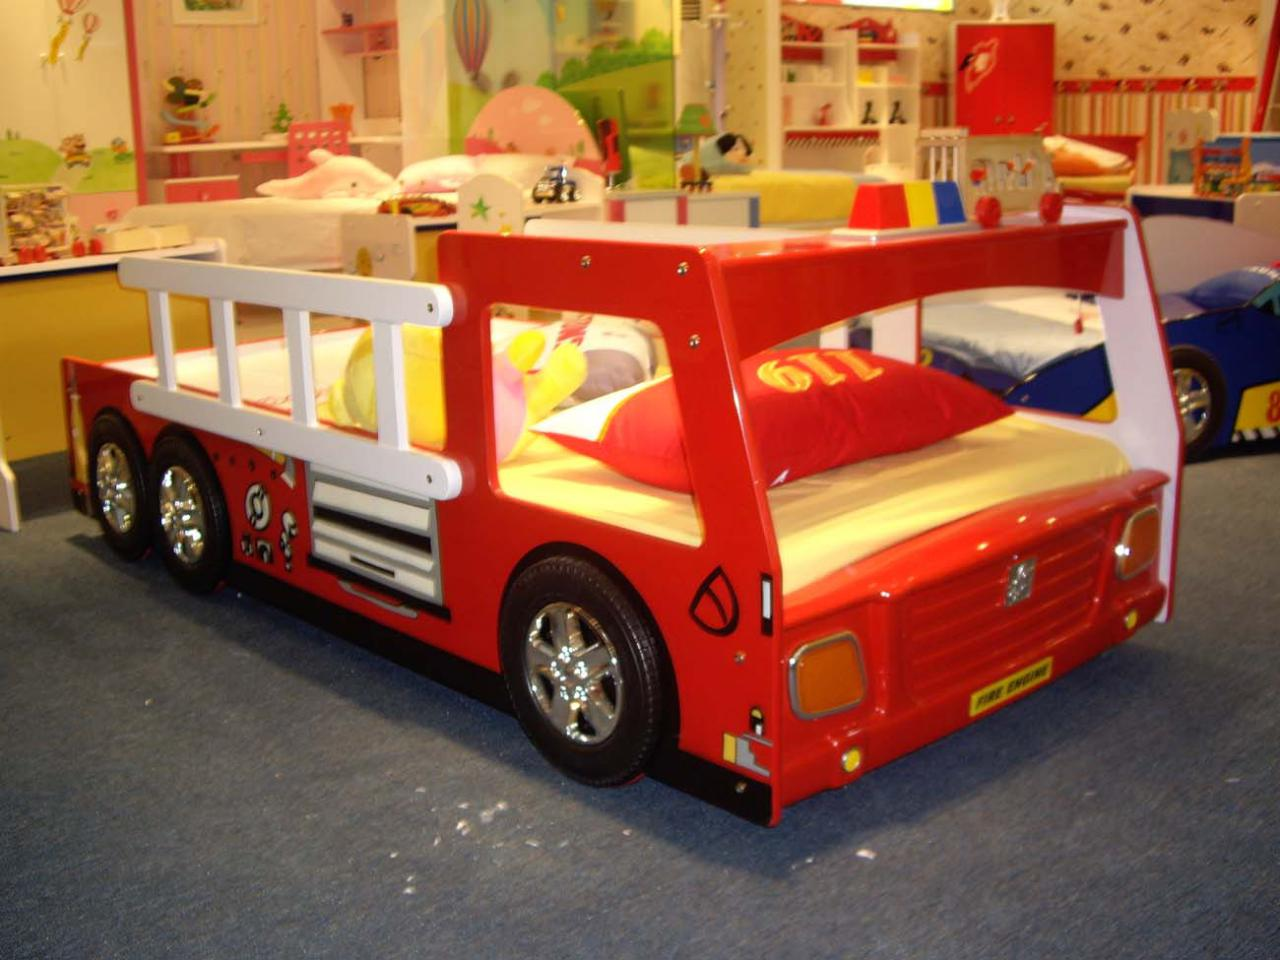 Cool Fire Cars Bedroom Decor Theme Ideas for Kids